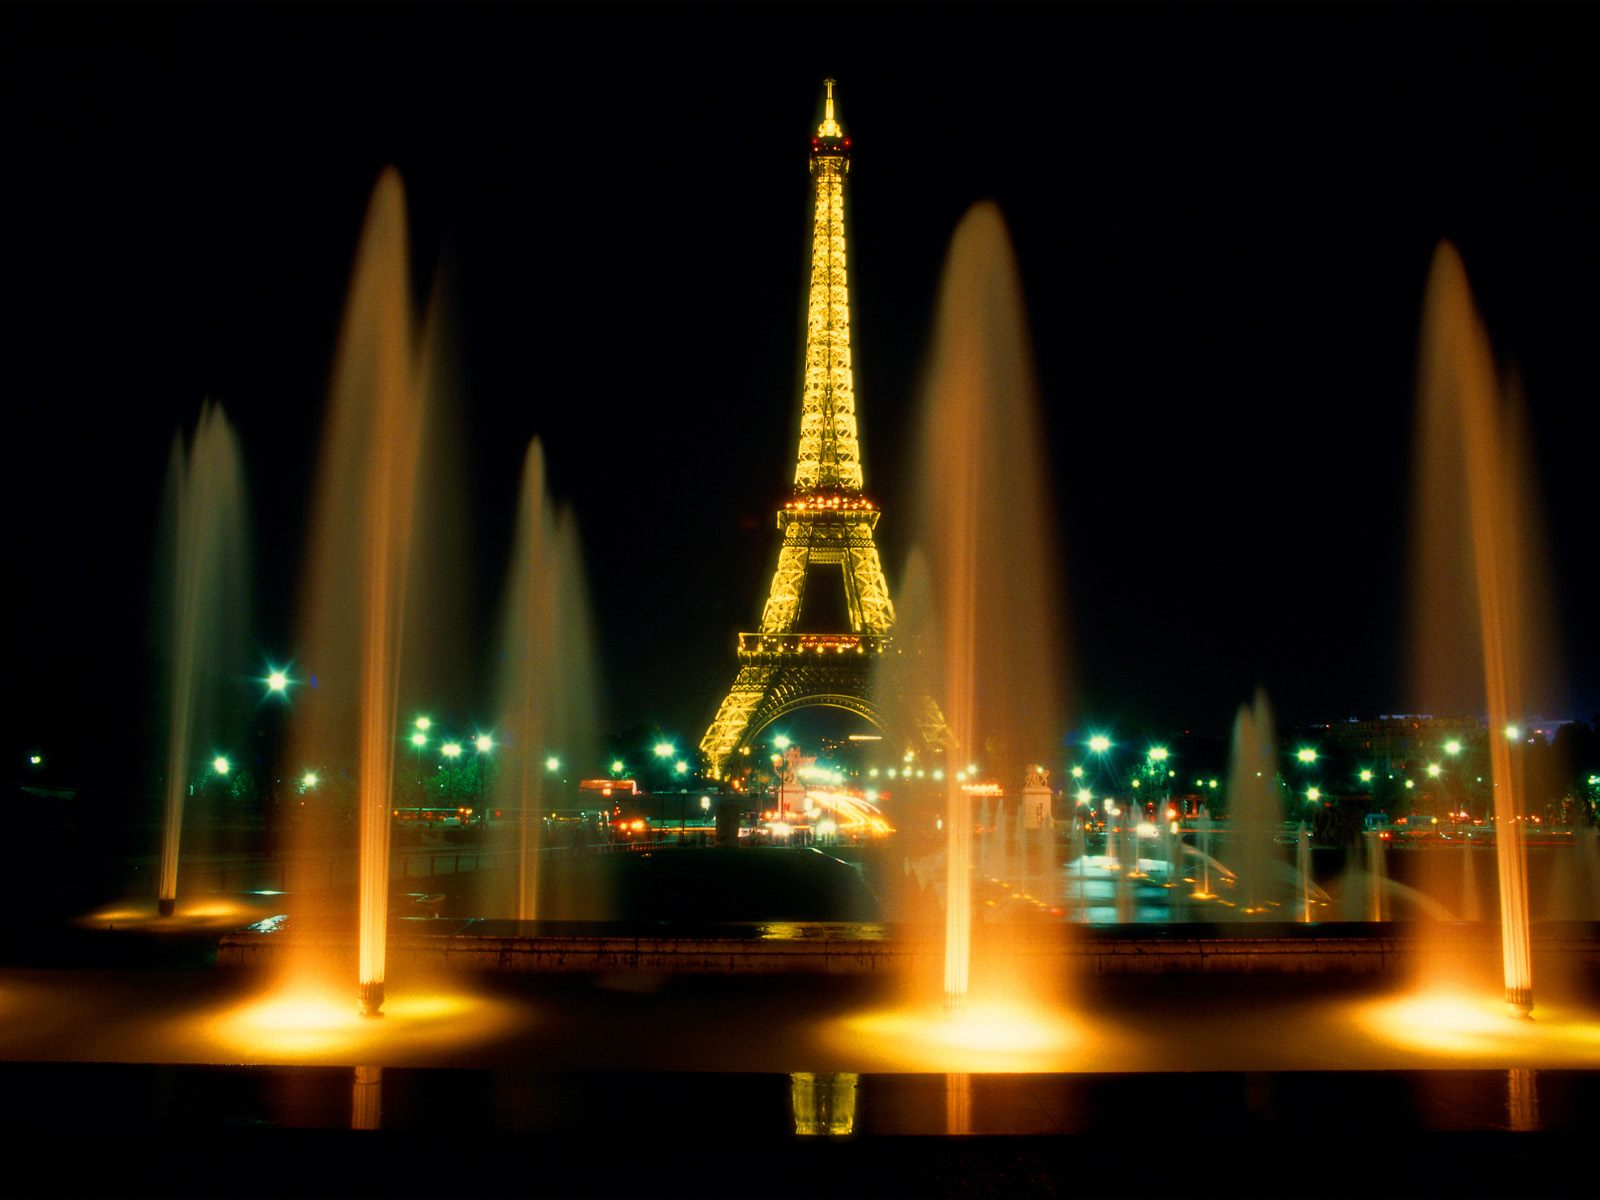 eiffel-tower-at-night-paris-city-free-download-beautiful-hd